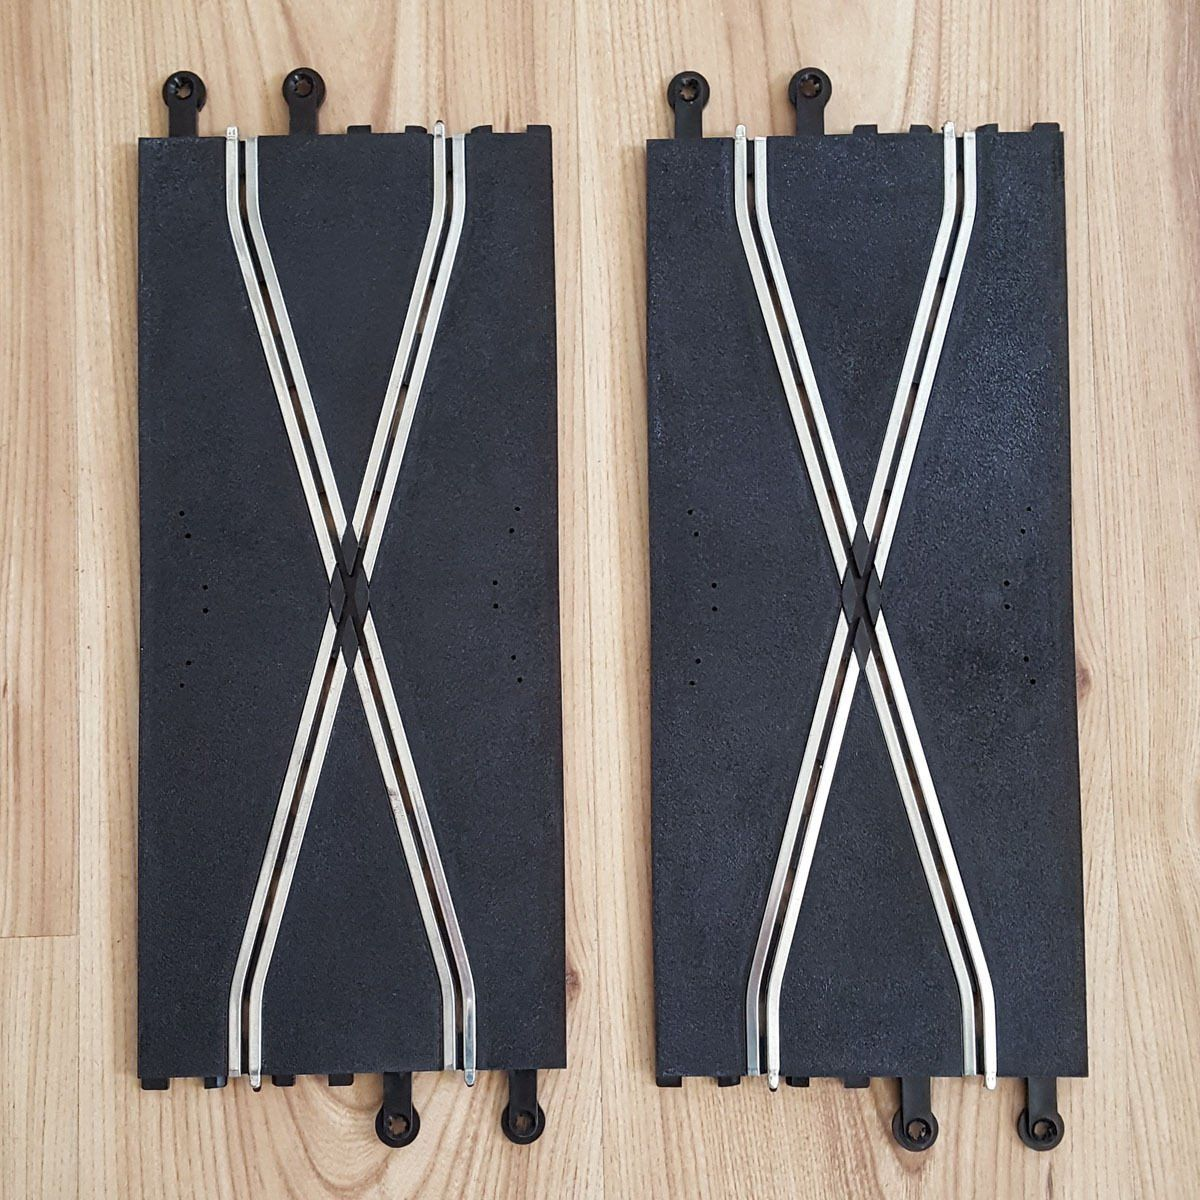 Scalextric 1:32 Classic Track C182 PT82 Plain Cross Over x 3  #A